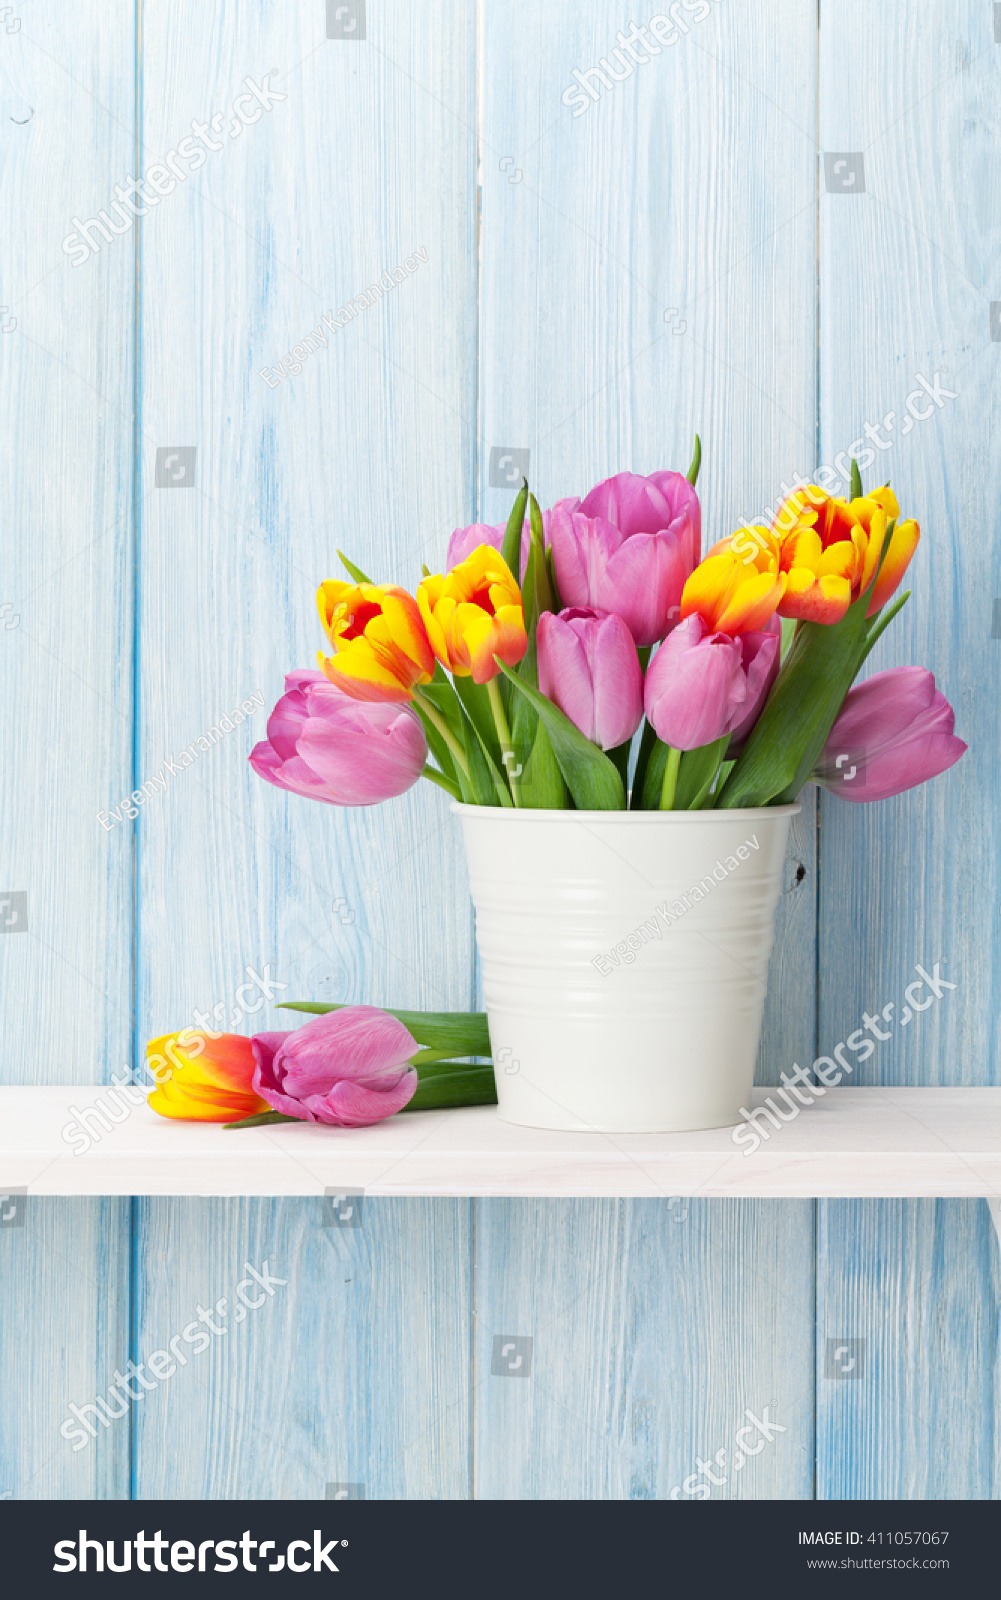 colorful tulip flowers - photo #45